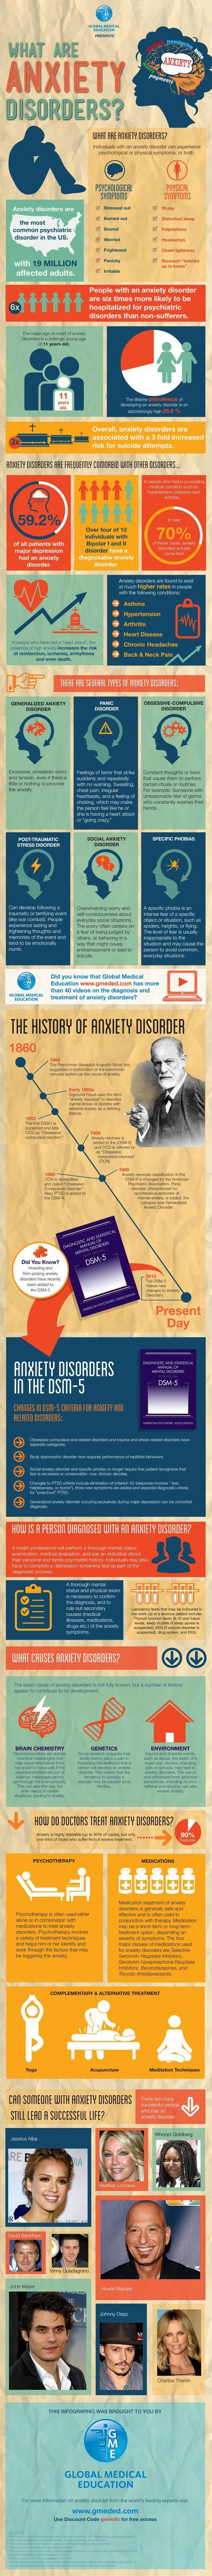 What are anxiety disorders? Let's have a look at this nice infographic explaining what anxiety disorders are. Discover why do several types of disorders exist: - Generalized anxiety disorder - Panic Disorder - Obsessive-Compulsive Disorder - PTSD - Social Anxiety Disorder - Specific Phobias  If you are more interested in phobias, check out what are the most common phobias here: https://mind-globe.com/common-fears/